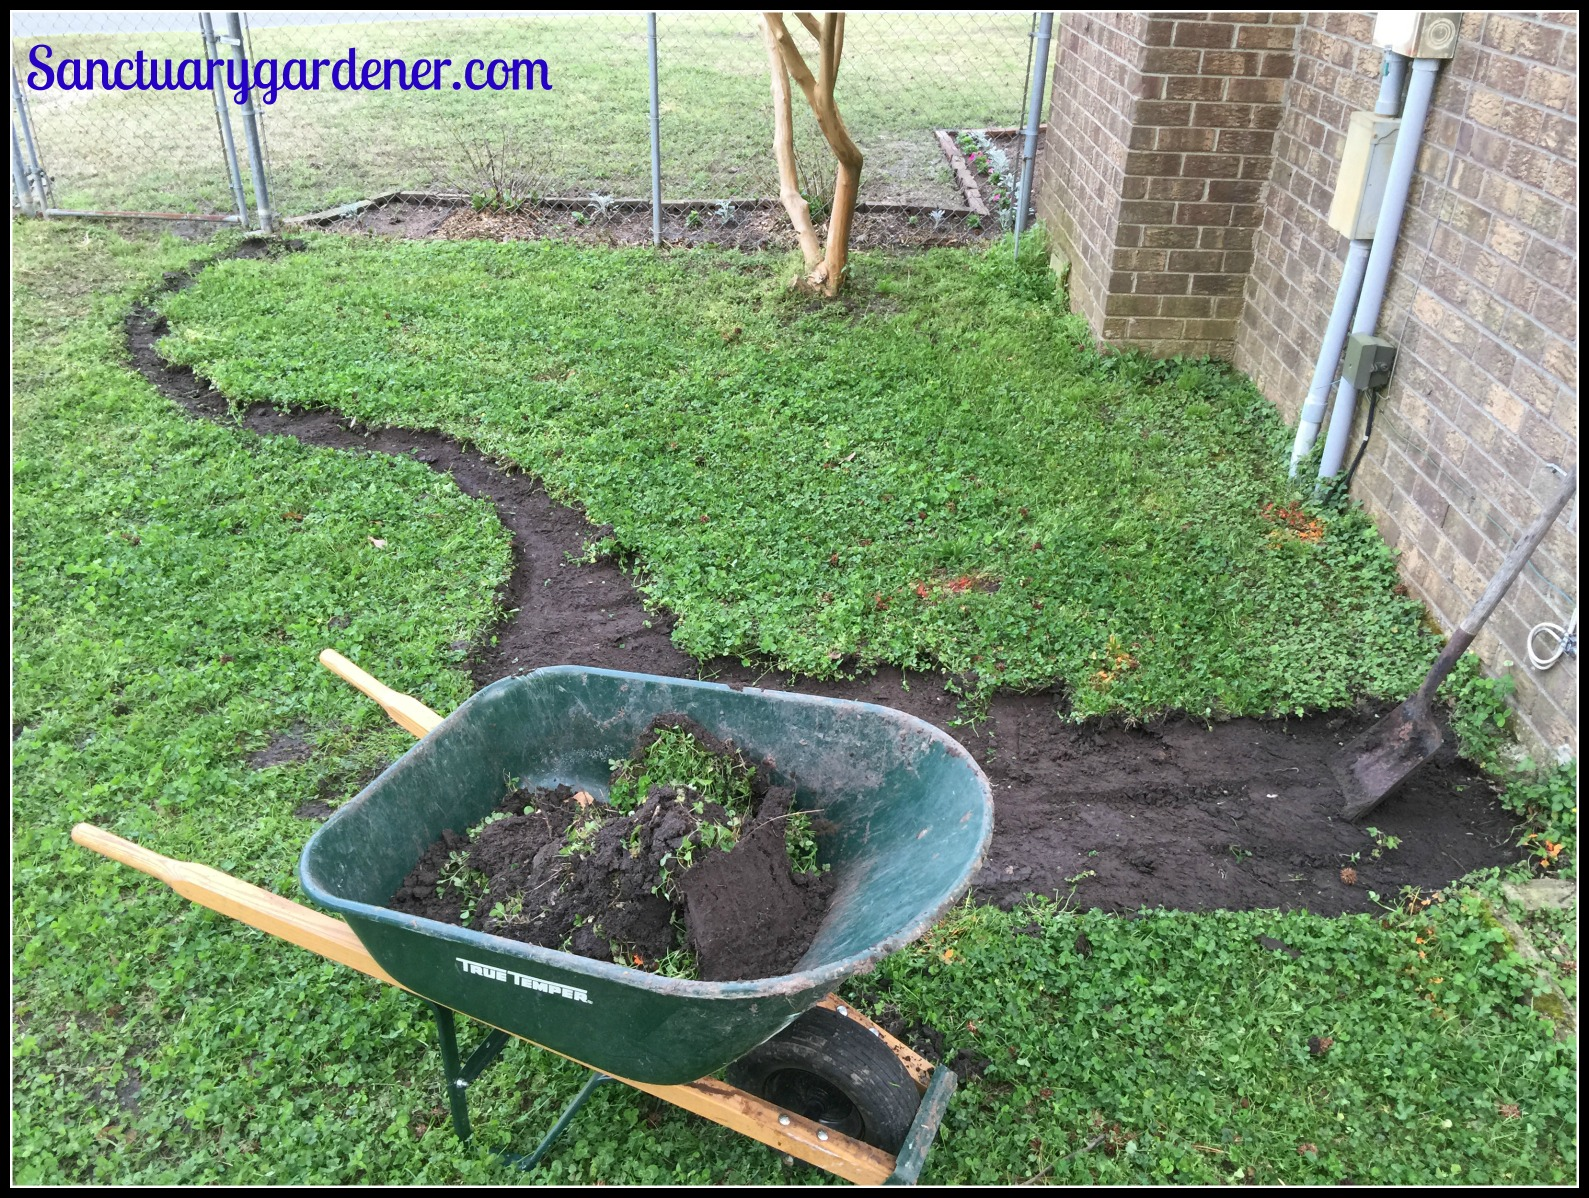 how to stop raccoons from digging up sod